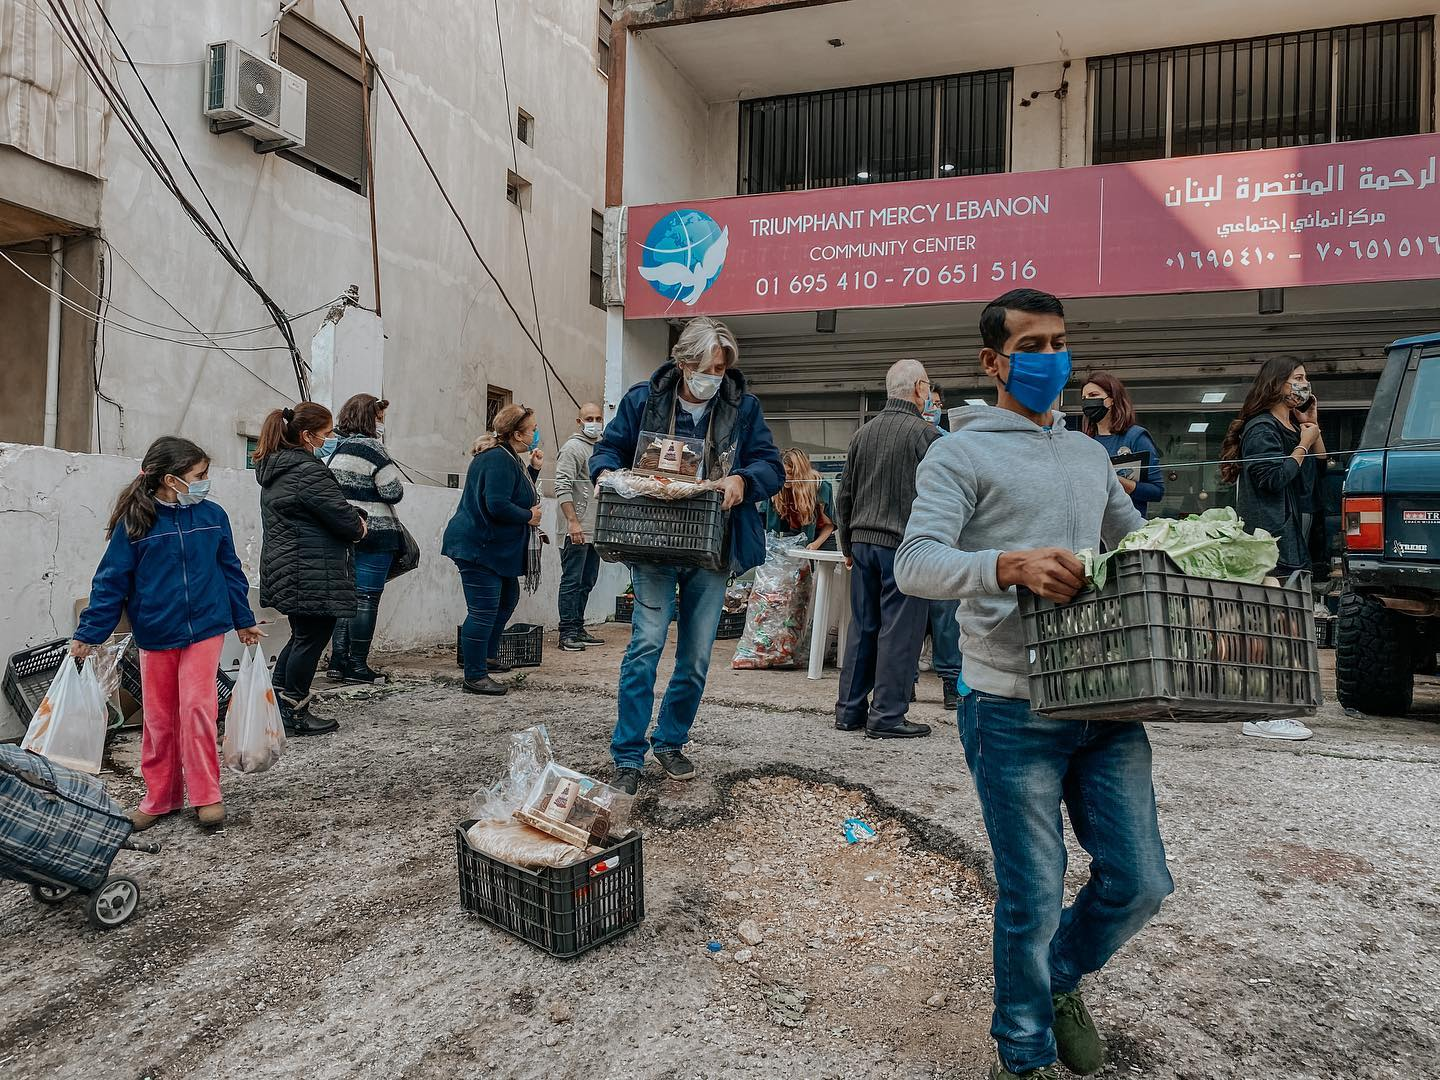 Lebanon Declares 24-hour Coronavirus Curfew; Triumphant Lebanon Staff Suffers Coronavirus Outbreak but Continues to Share the Gospel Digitall